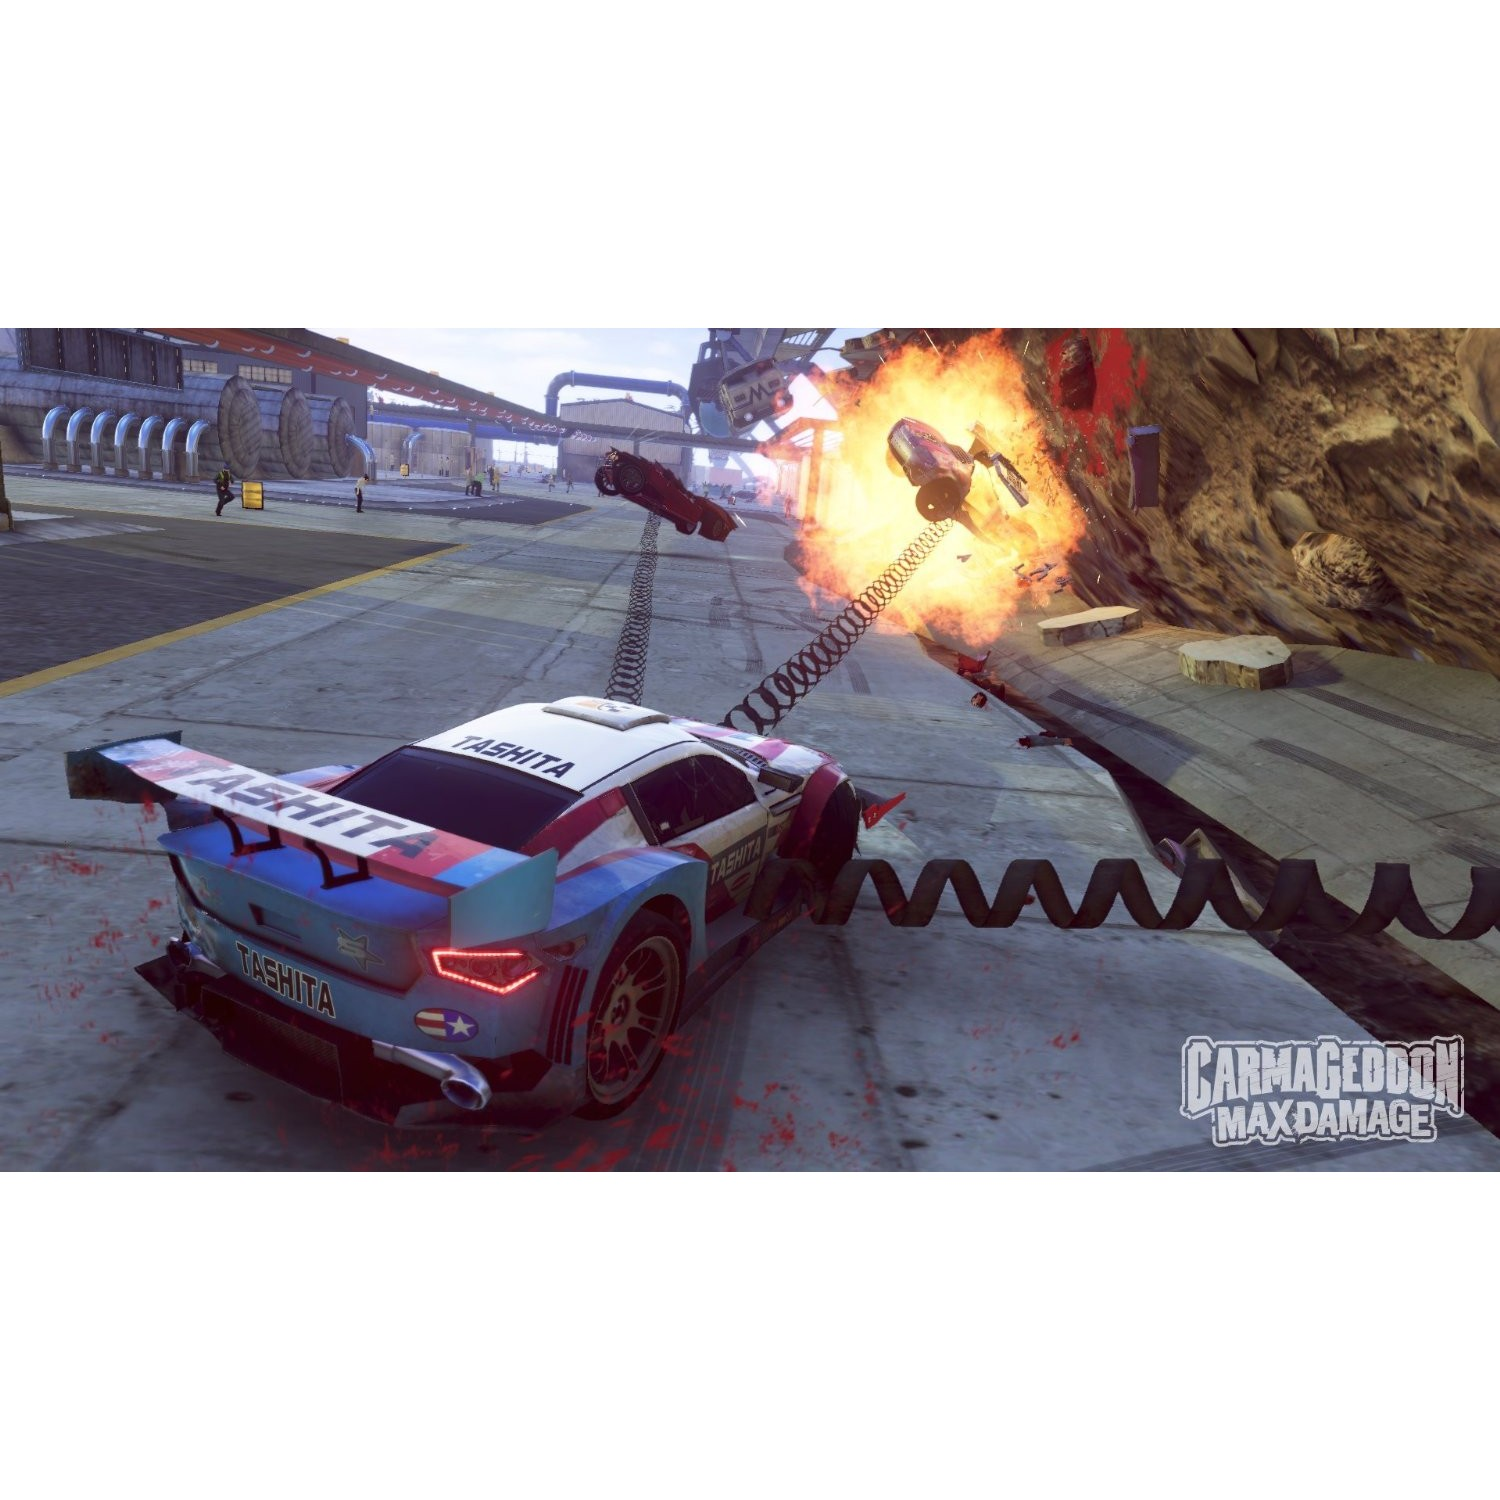 Joc Carmageddon: Max Damage Ps4 3